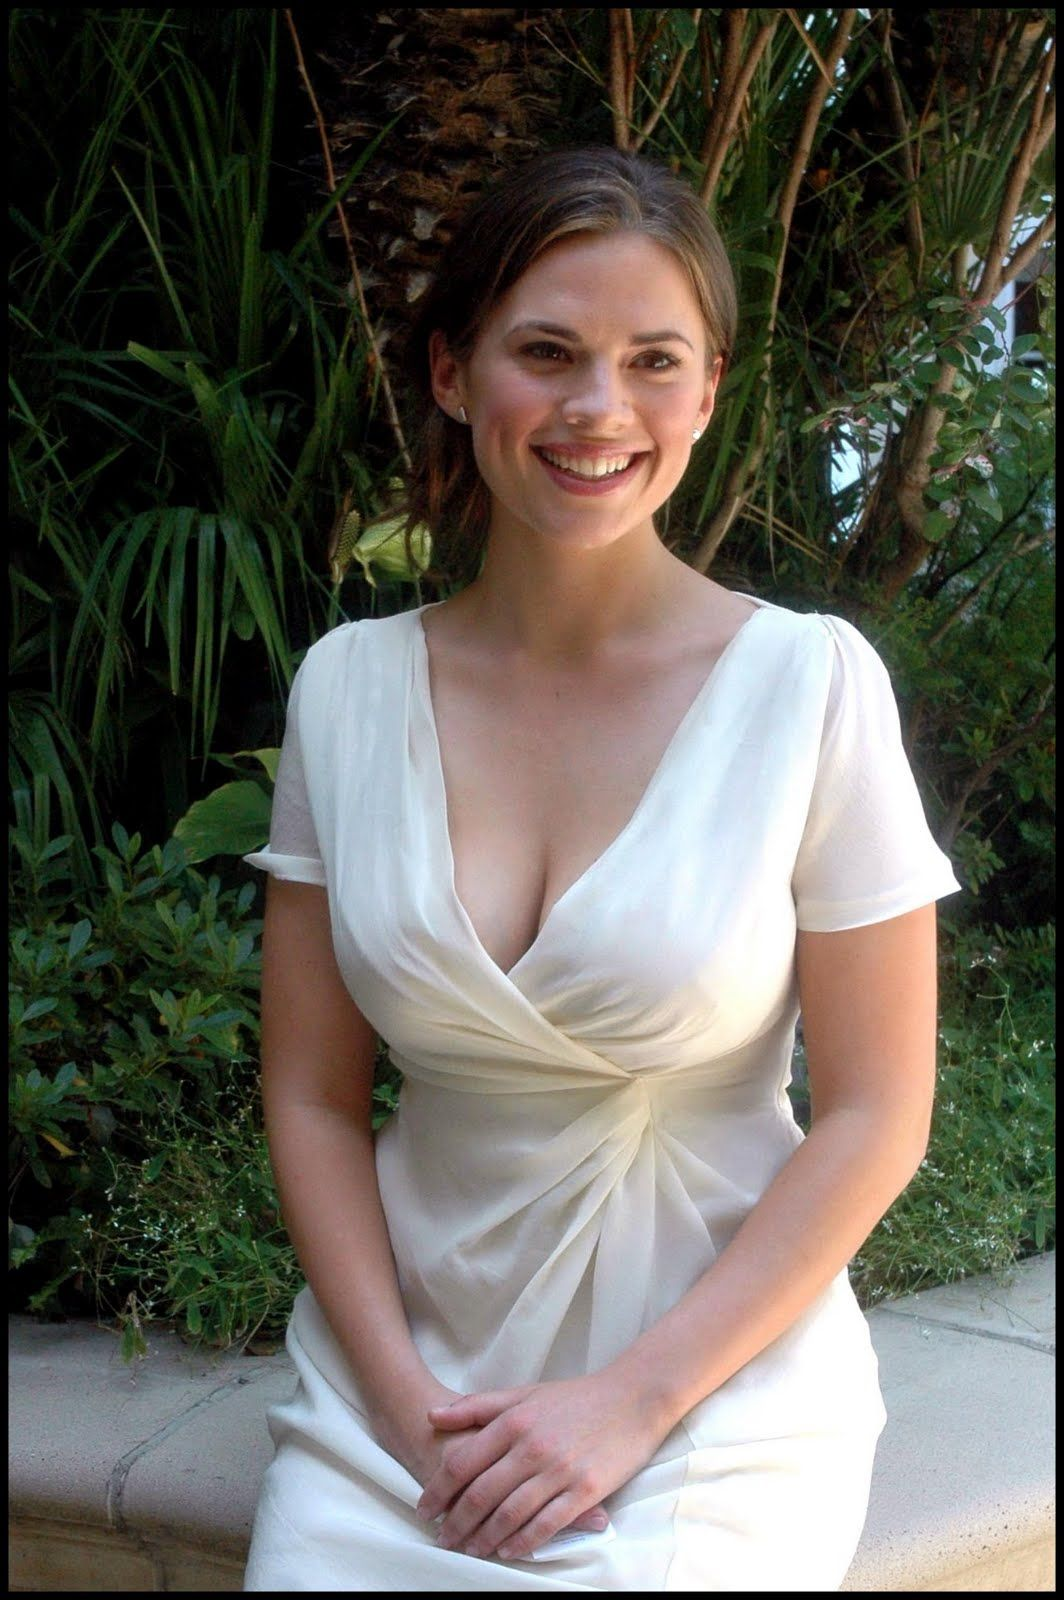 Pin by toastbrot63 on Beauty in 2020 | Hayley atwell